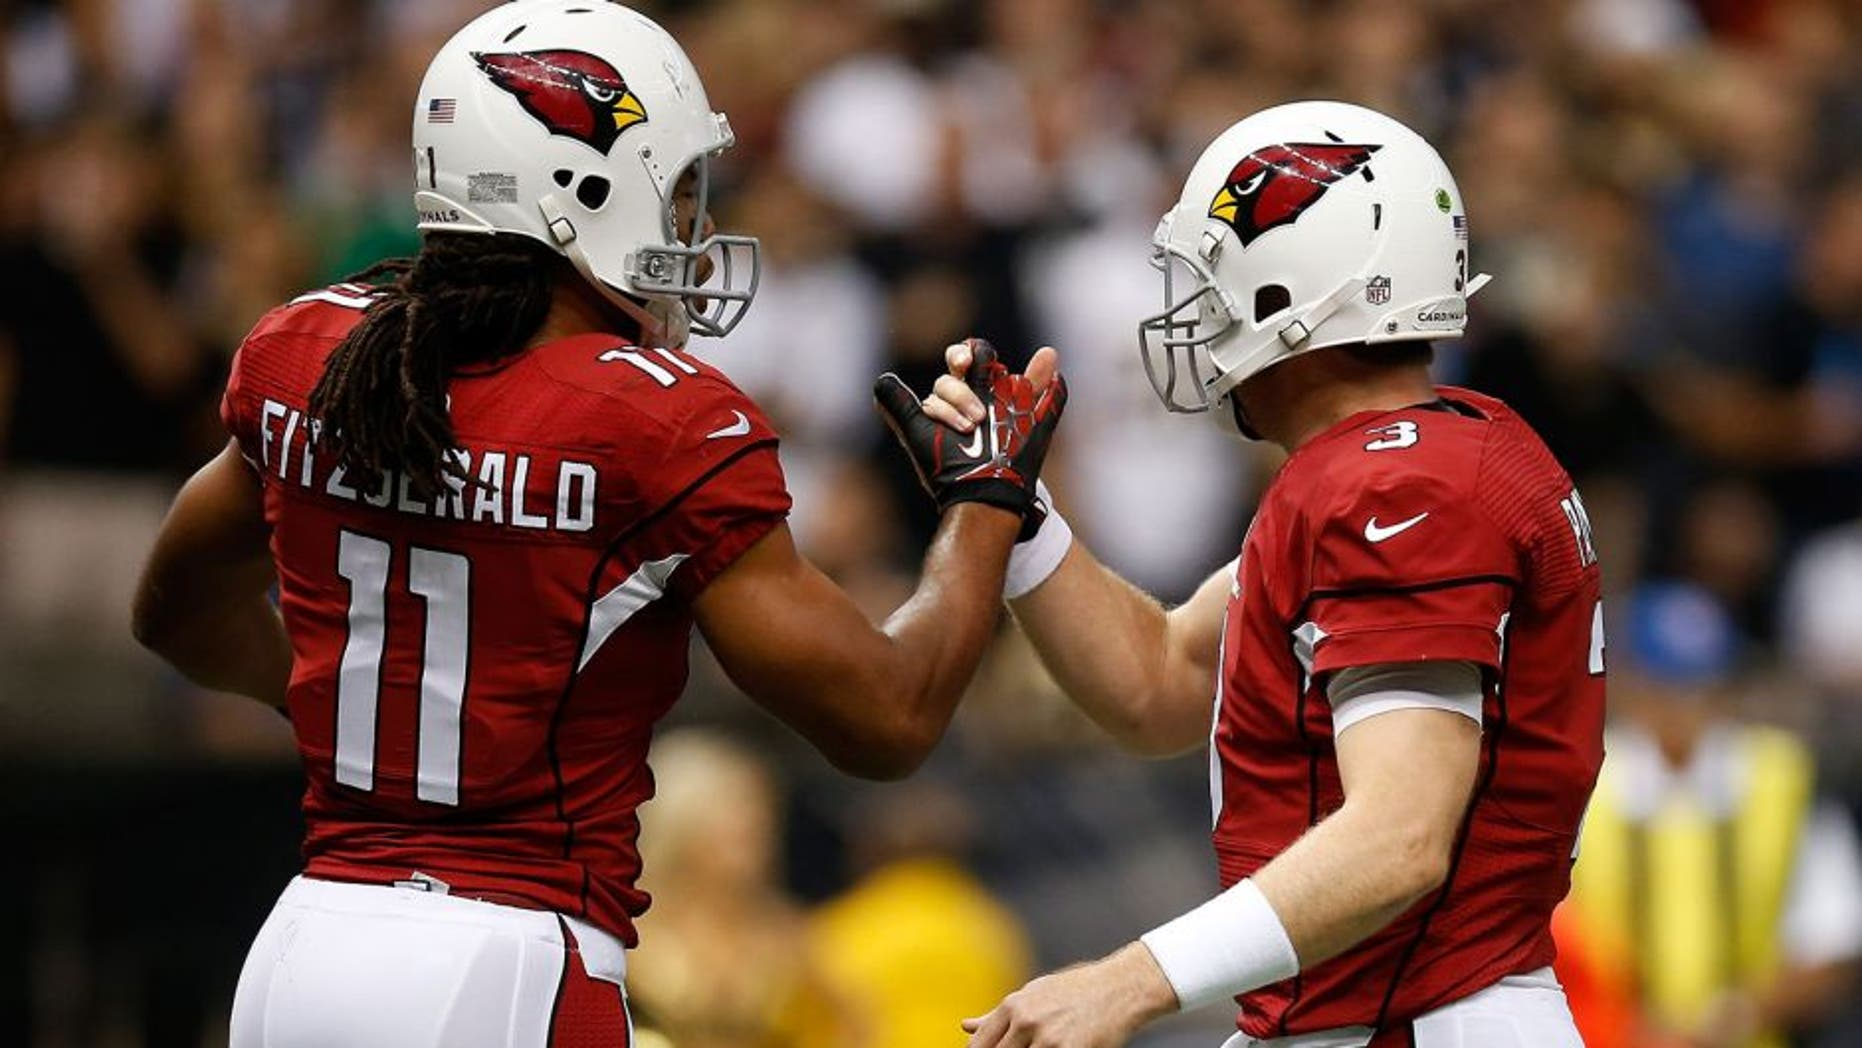 NEW ORLEANS, LA - SEPTEMBER 22: Carson Palmer and Larry Fitzgerald #11 of the Arizona Cardinals celebrate after a touchdown against the New Orleans Saints at the Mercedes-Benz Superdome on September 22, 2013 in New Orleans, Louisiana. (Photo by Chris Graythen/Getty Images)